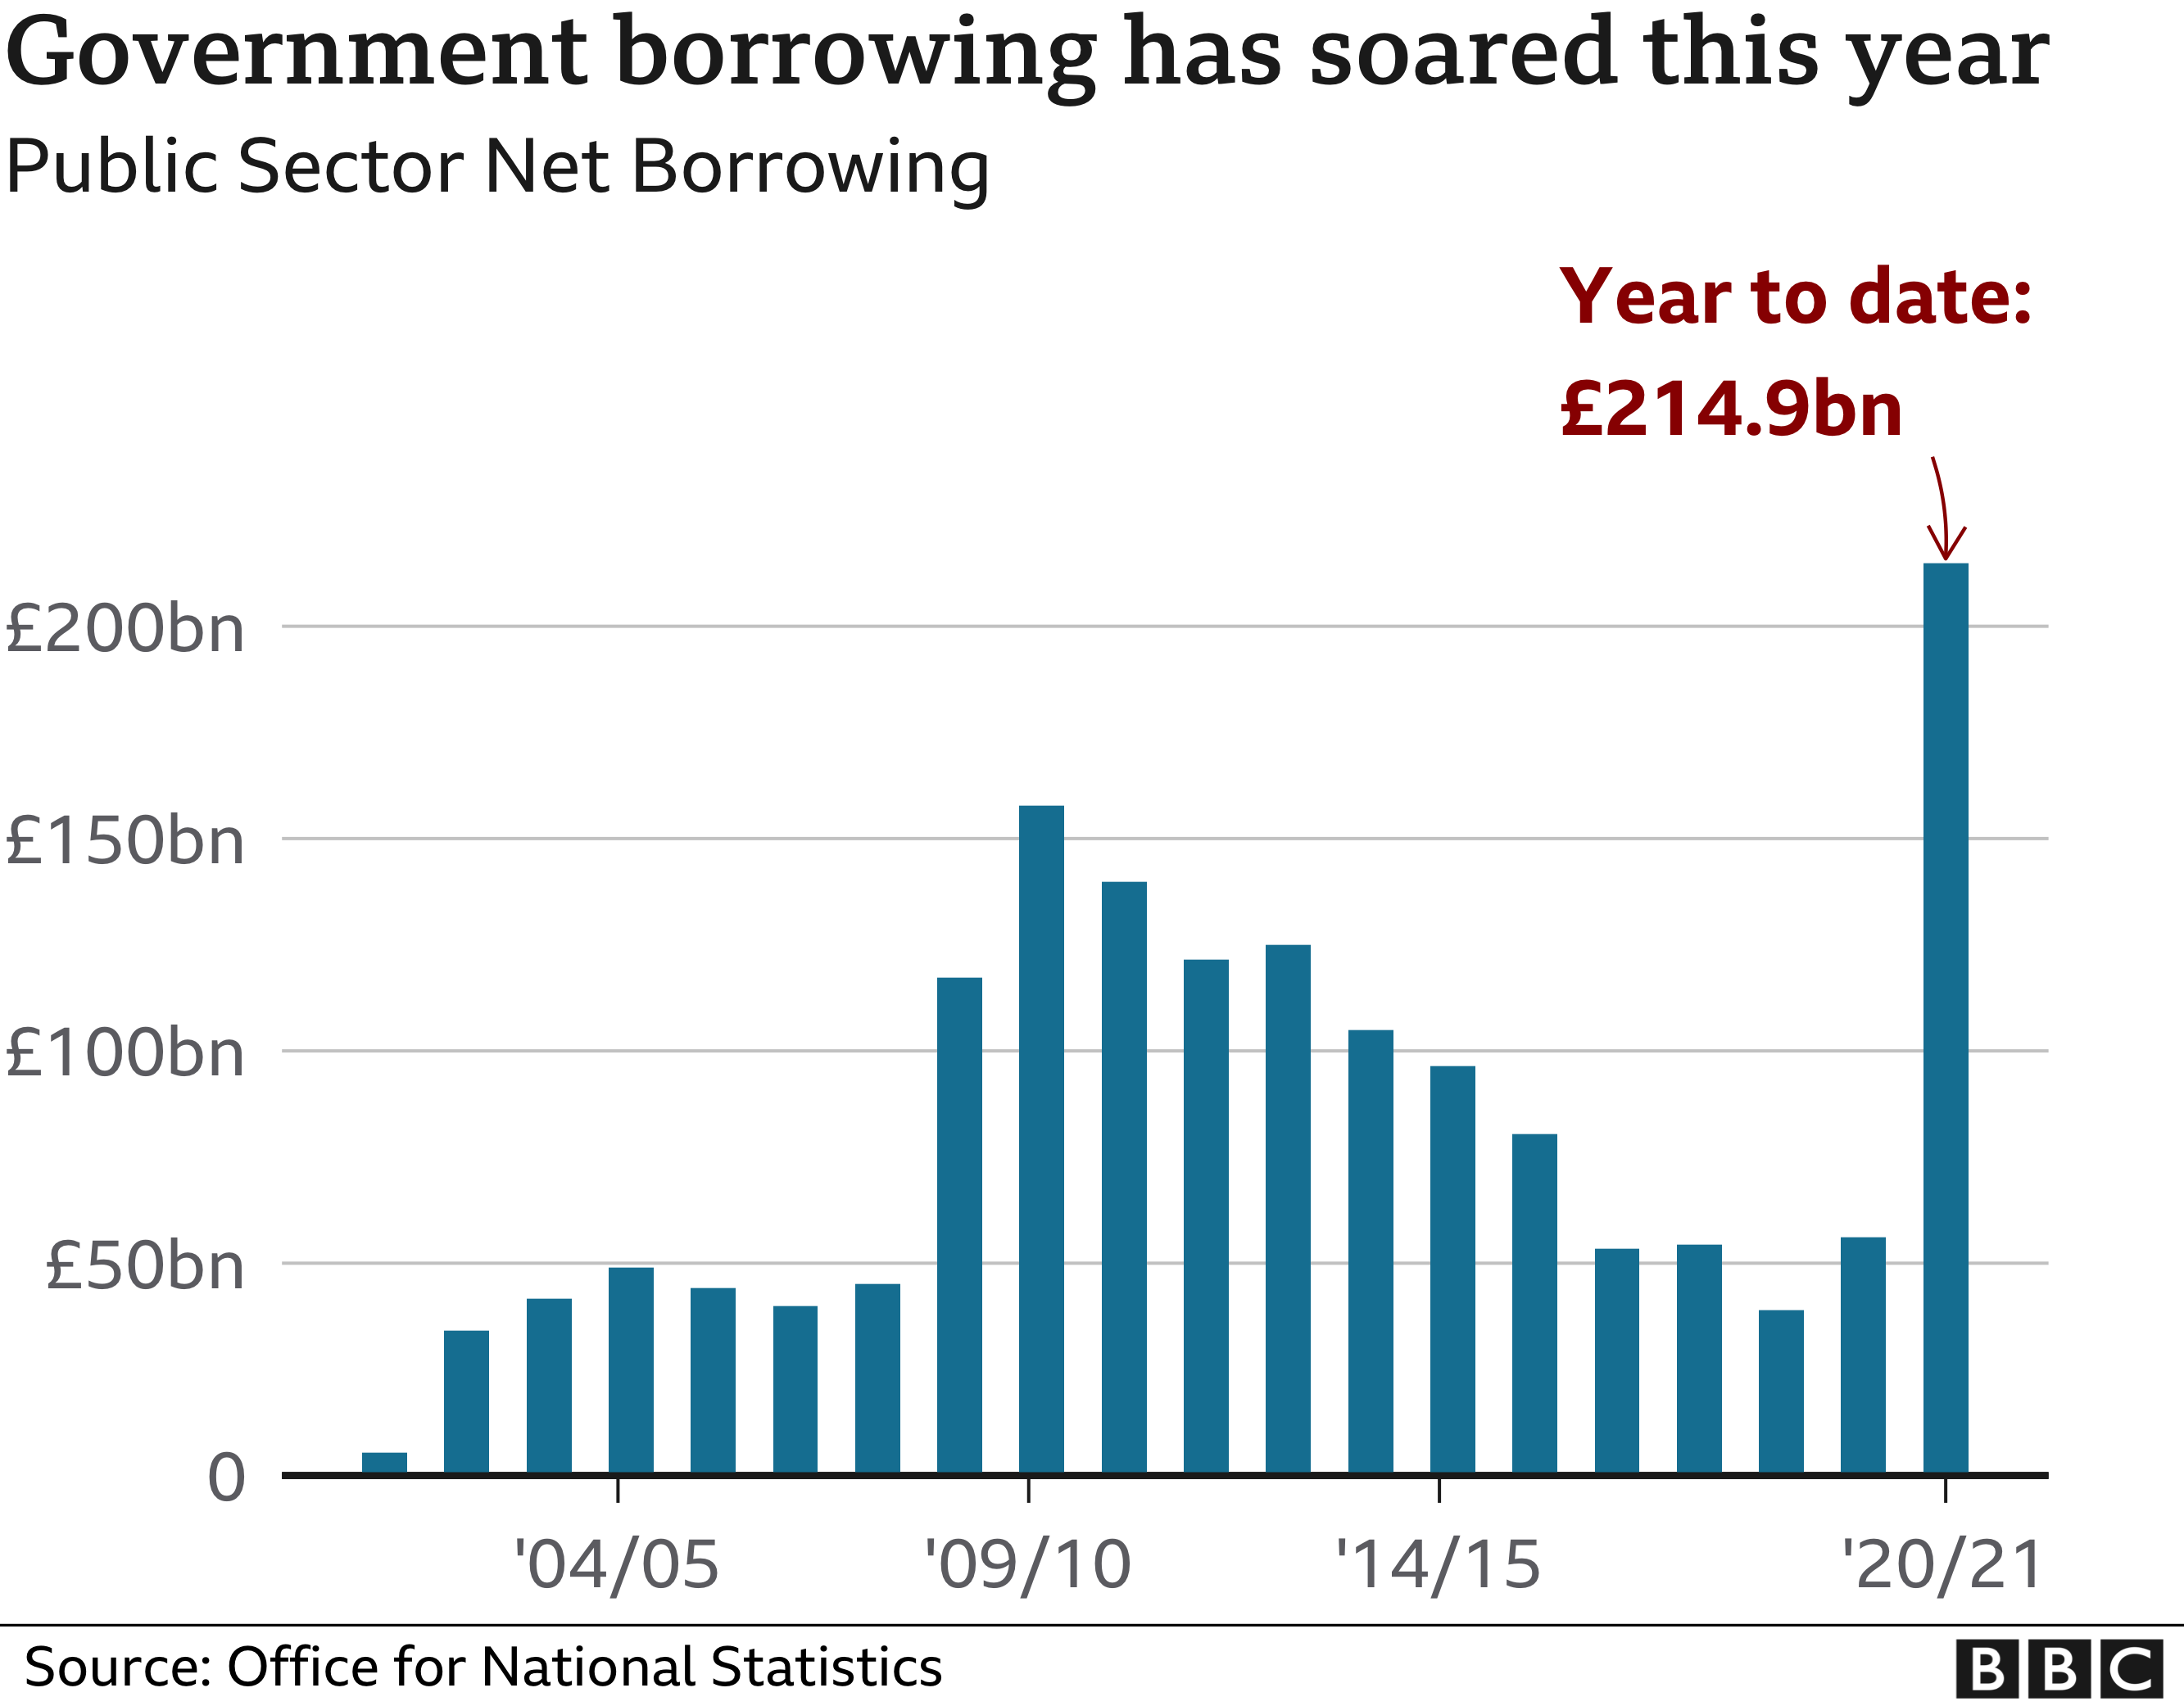 Graph of government spending by year, rising to £215bn in 2020/21